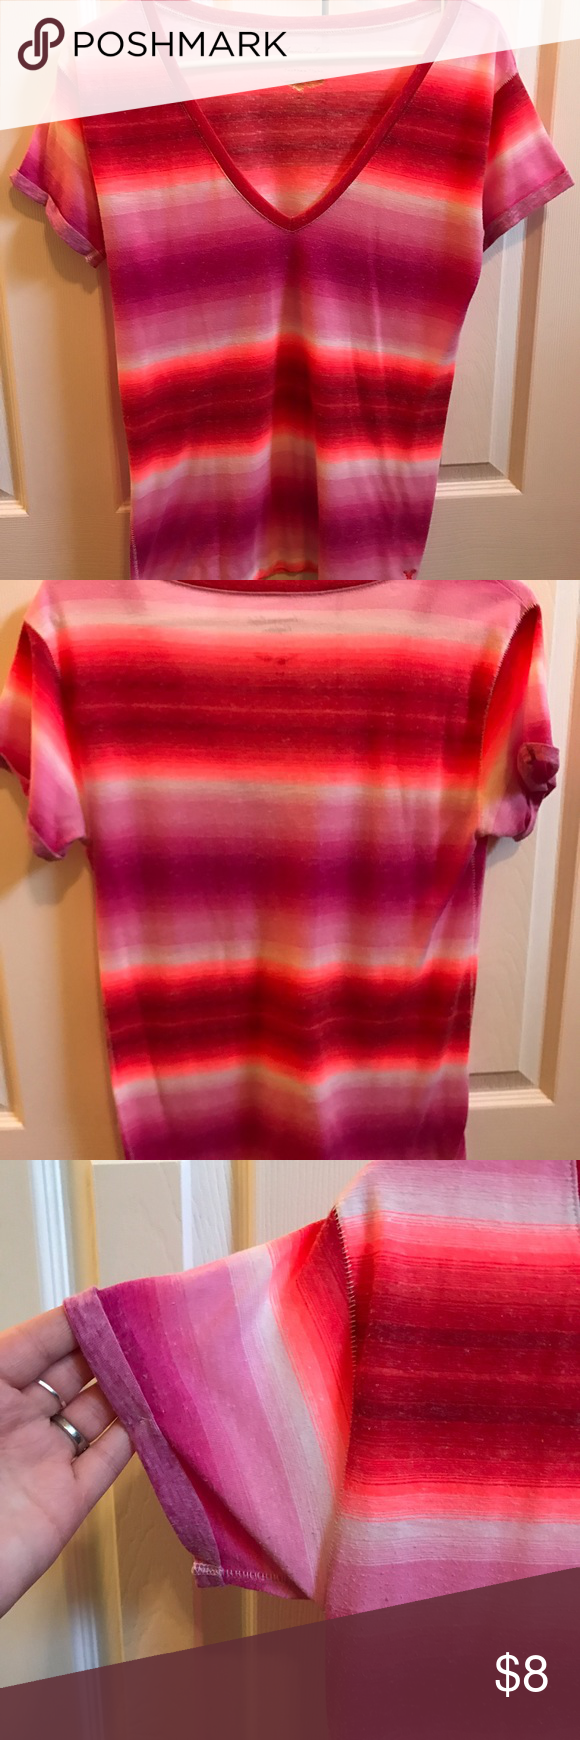 Vibrant AE top This bright American Eagle top is feather light and made to look warn. It is super soft and comfy. The v neck plunges a little down. American Eagle Outfitters Tops Tees - Short Sleeve